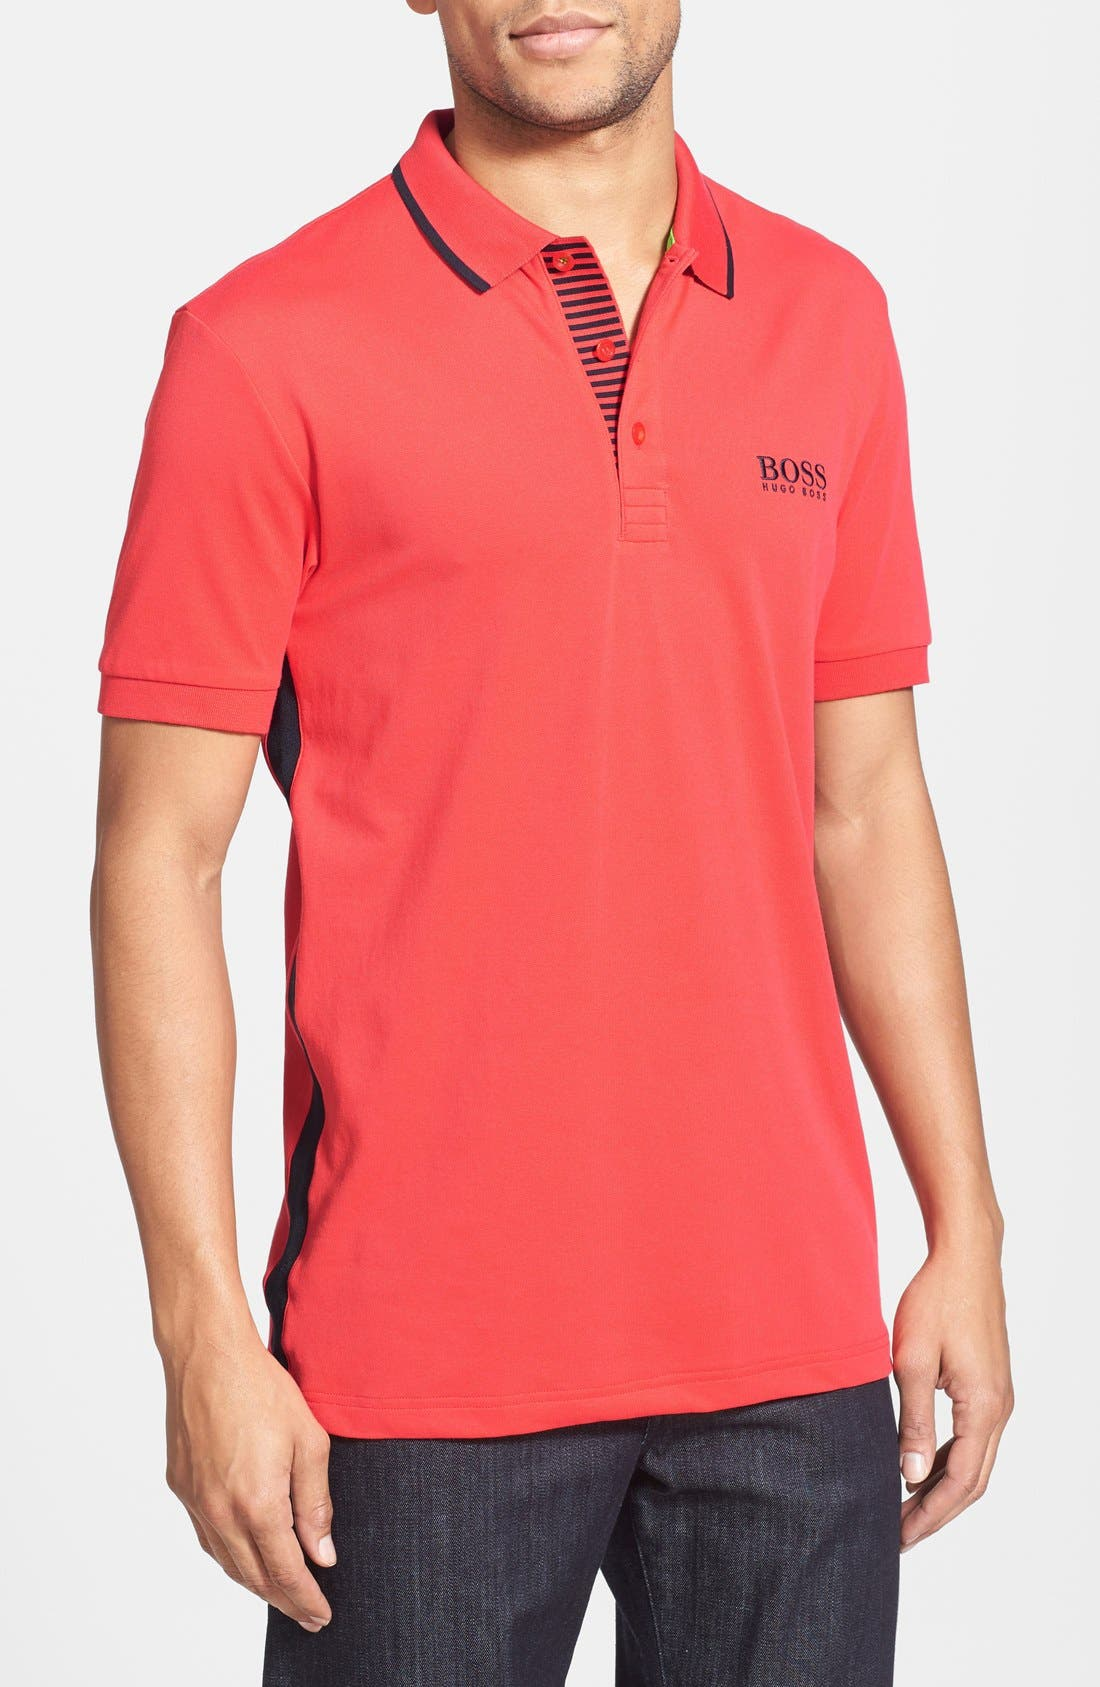 Alternate Image 1 Selected - BOSS Green 'Paddy Pro 1' Moisture Wicking Stretch Polo